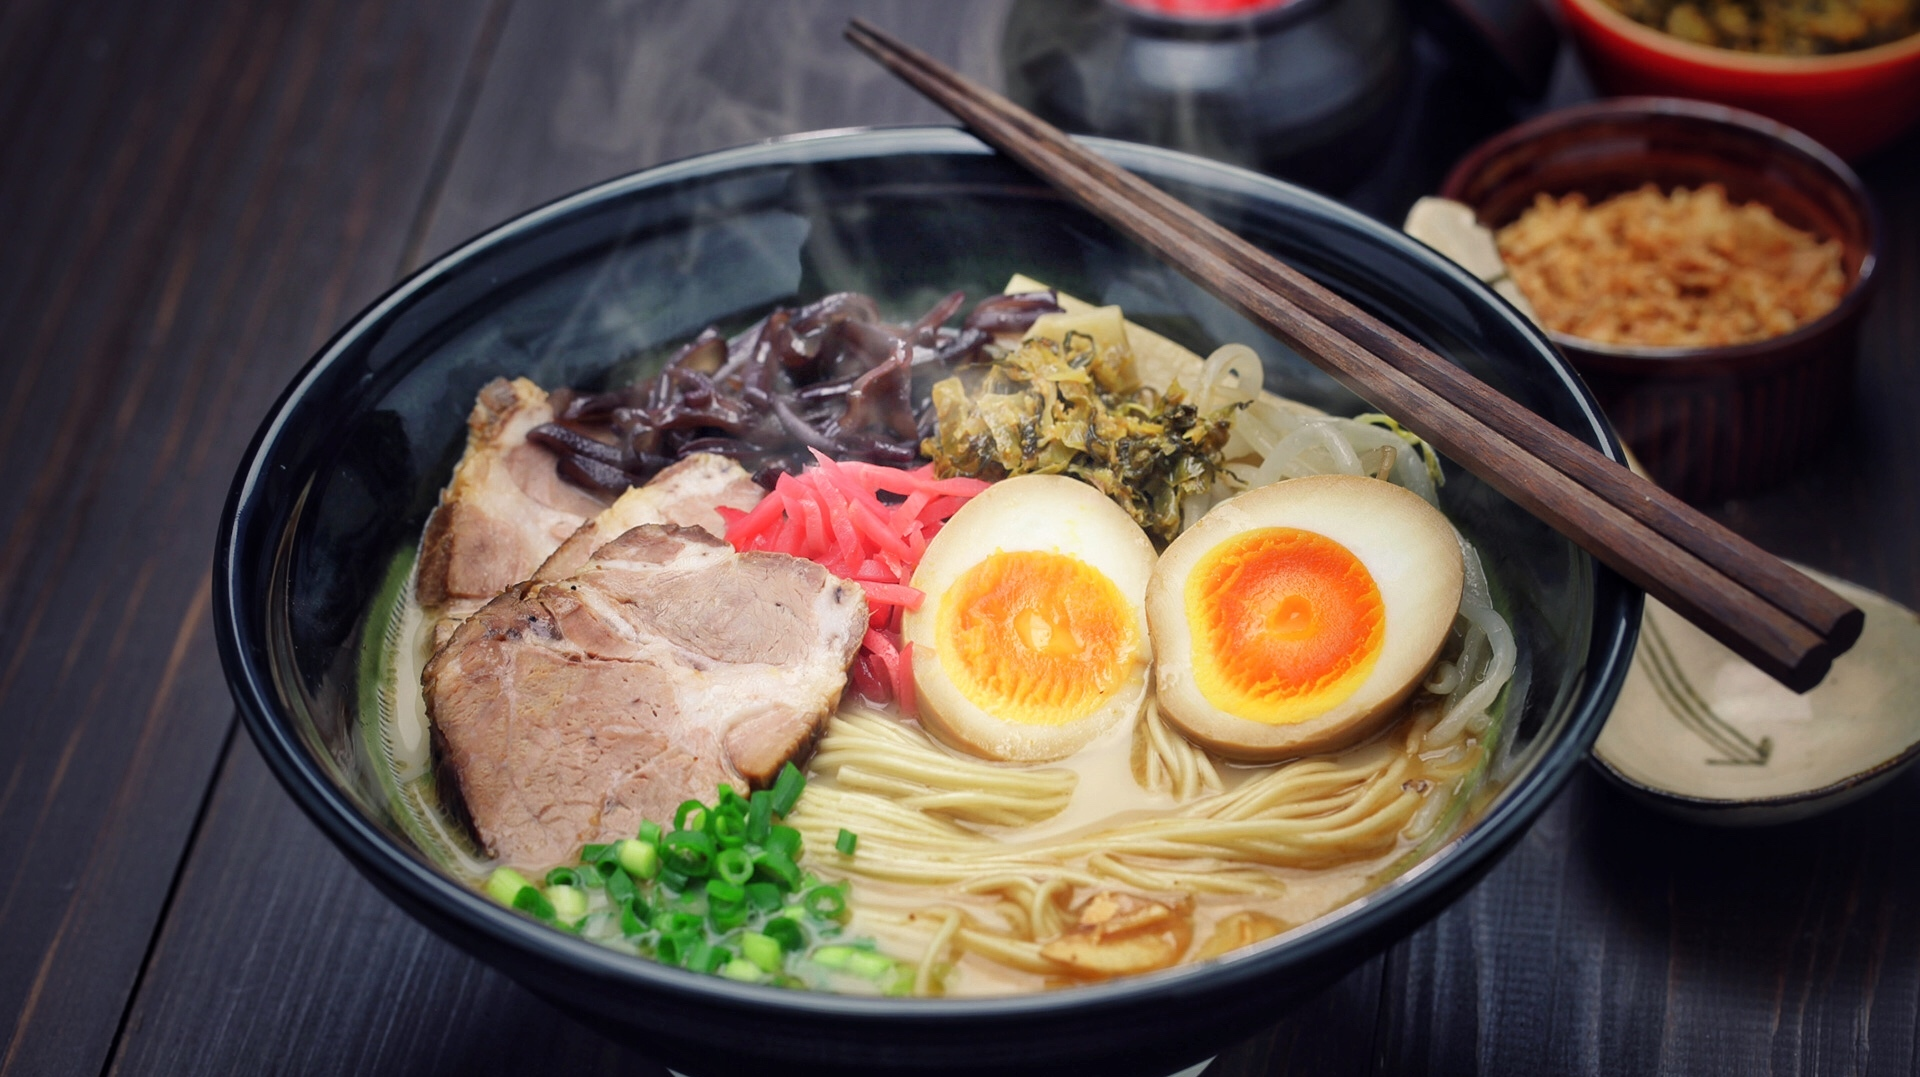 Tasty ramen topping combos that think way outside the cellophane package